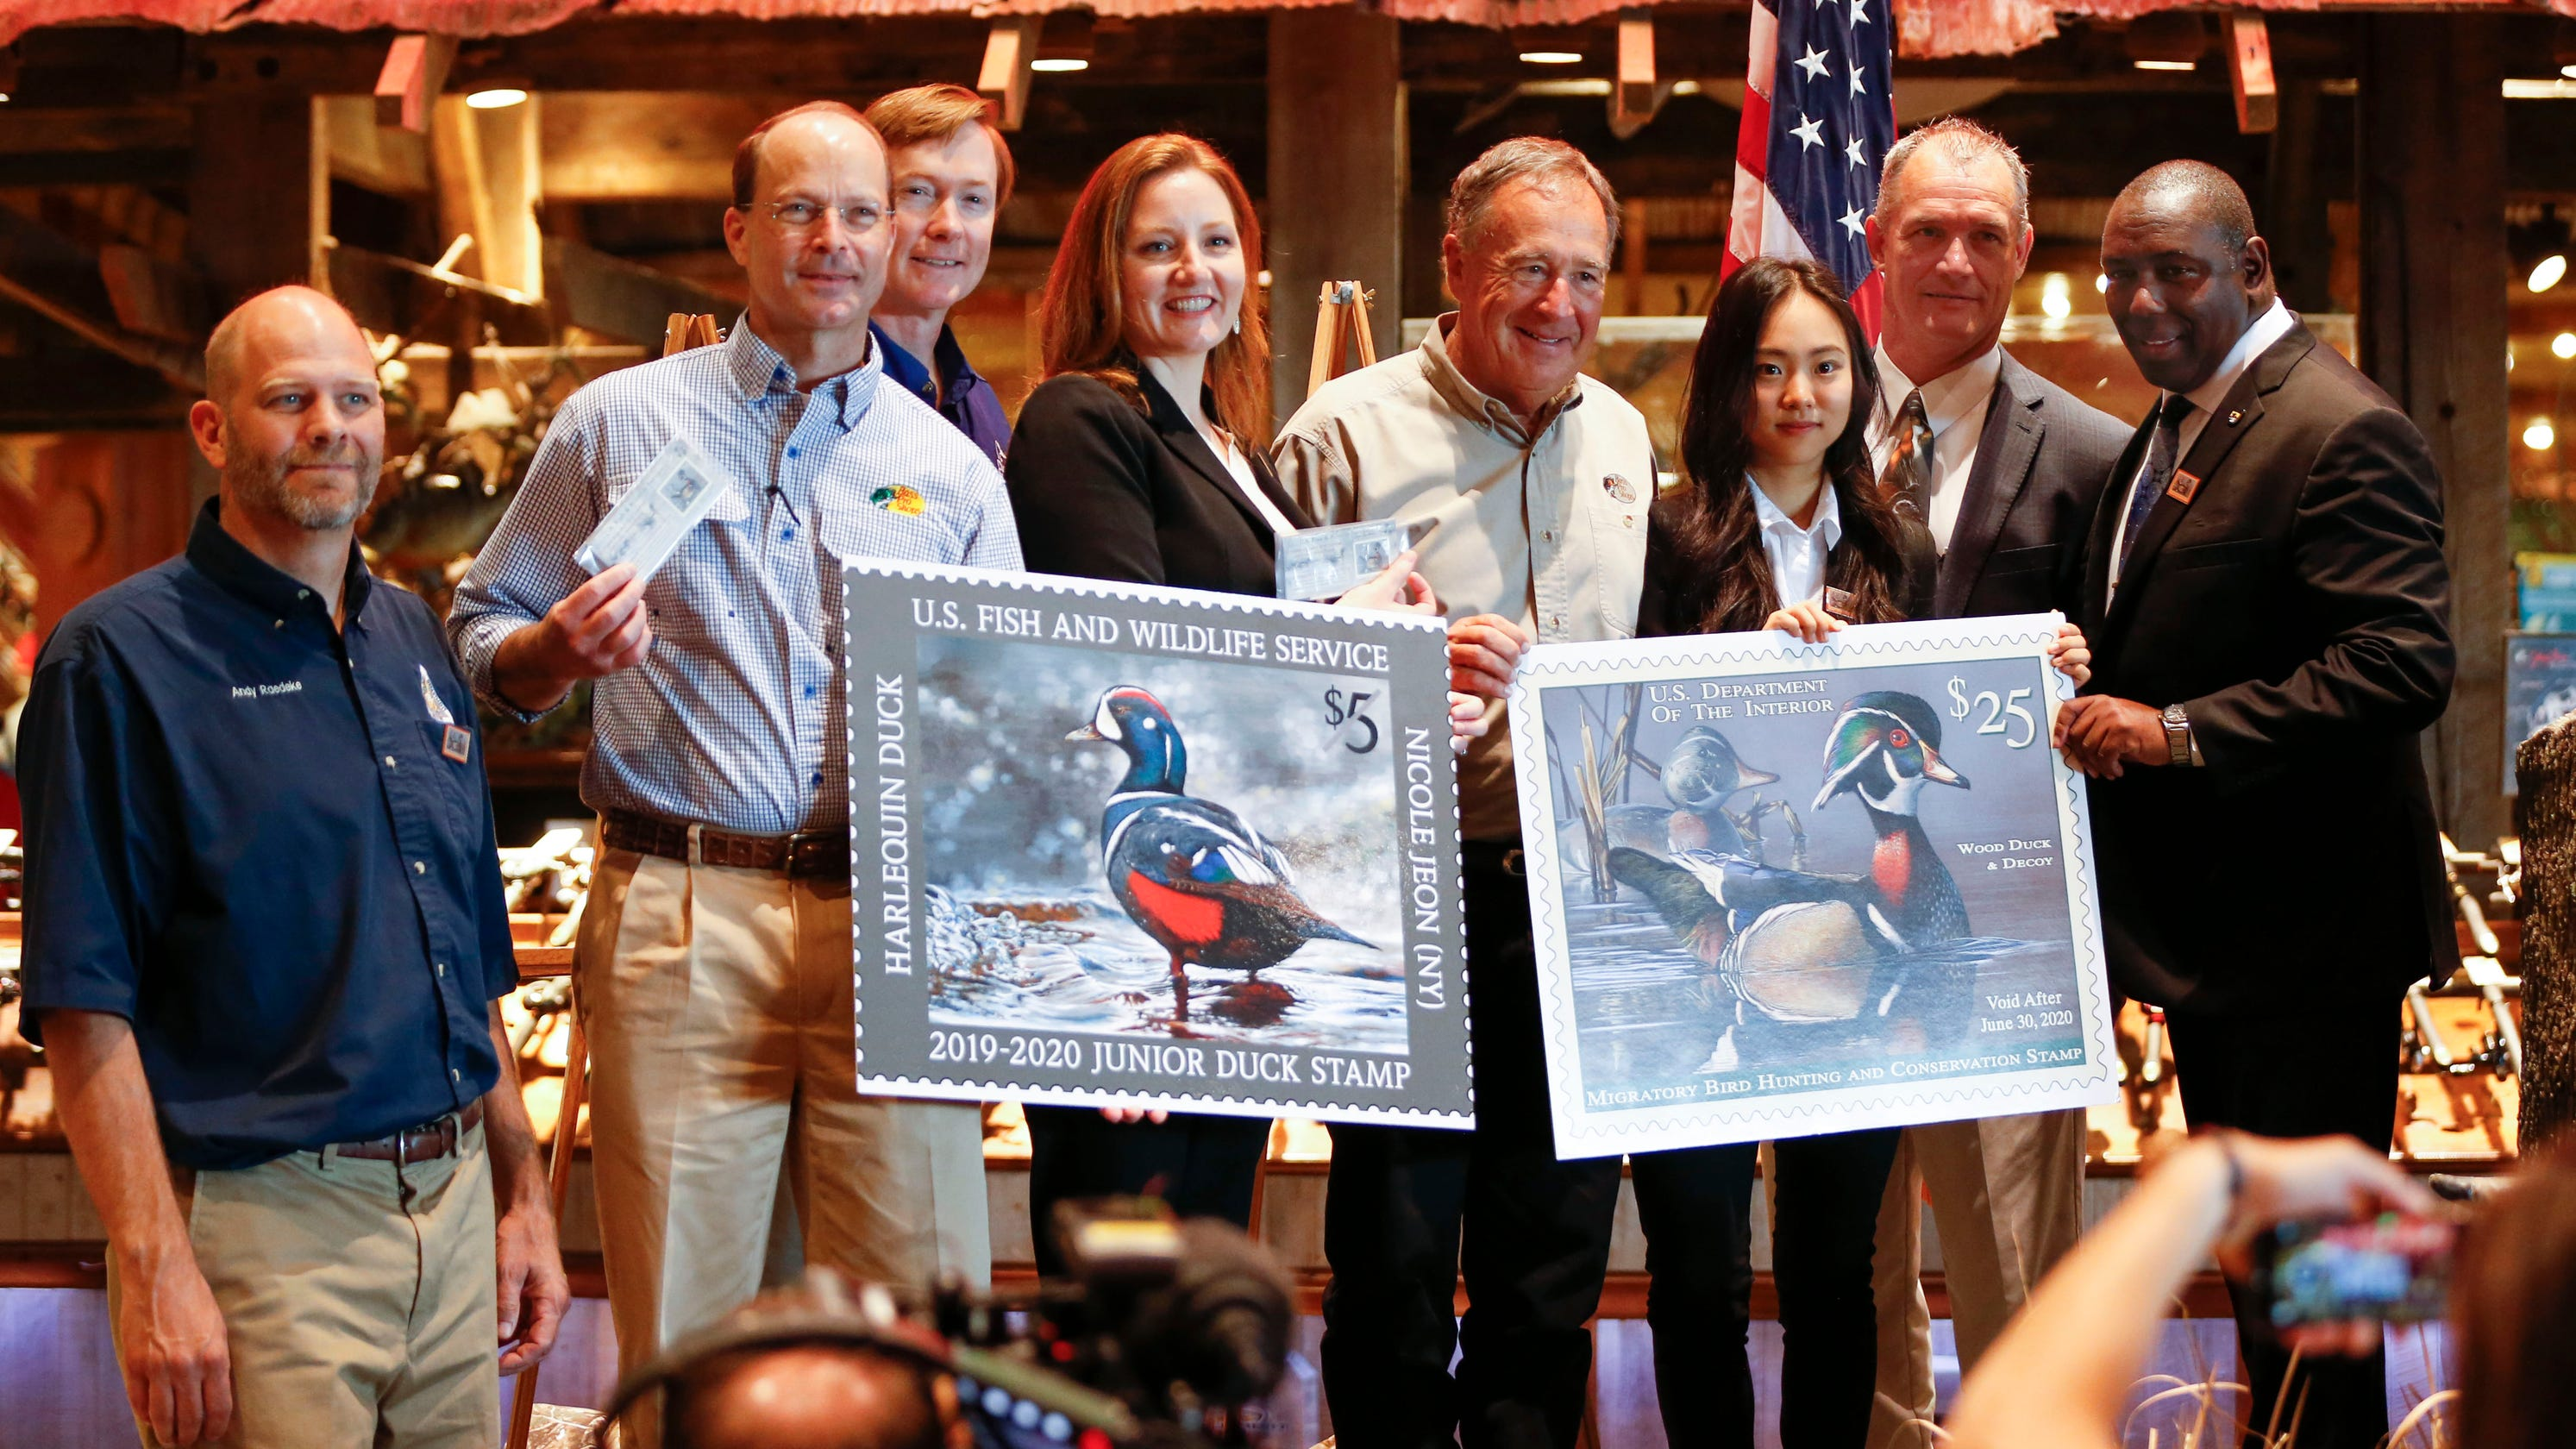 Best Duck Decoys 2020 Story behind the paintings: Duck Stamp winners revealed at Bass Pro